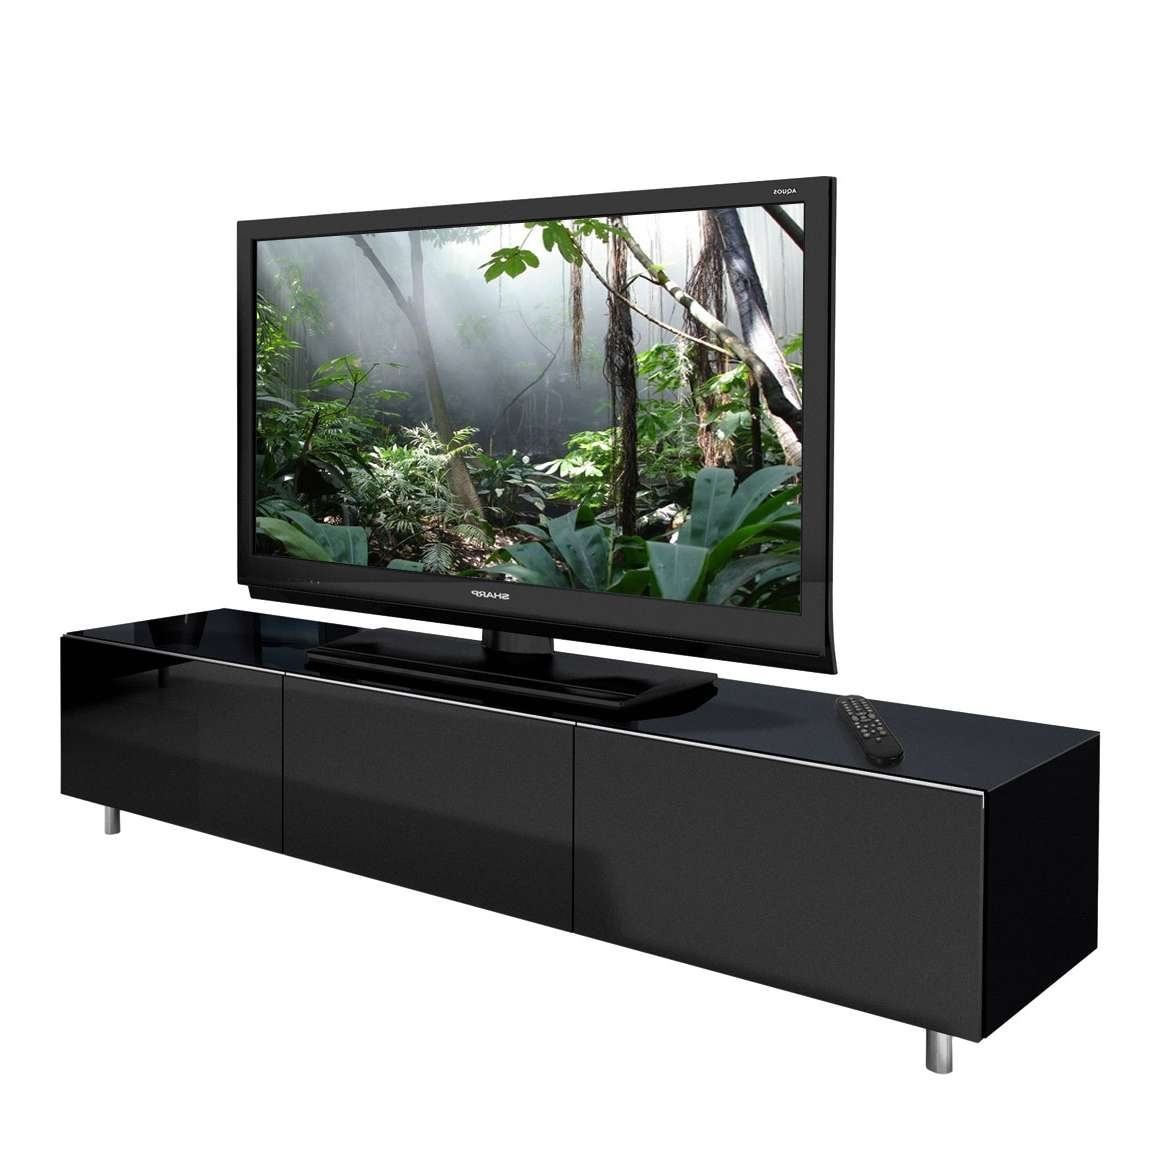 Spectral Just Racks Jrl1650S Gloss Black Tv Cabinet – Just Racks With Tv Stands Black Gloss (View 12 of 15)